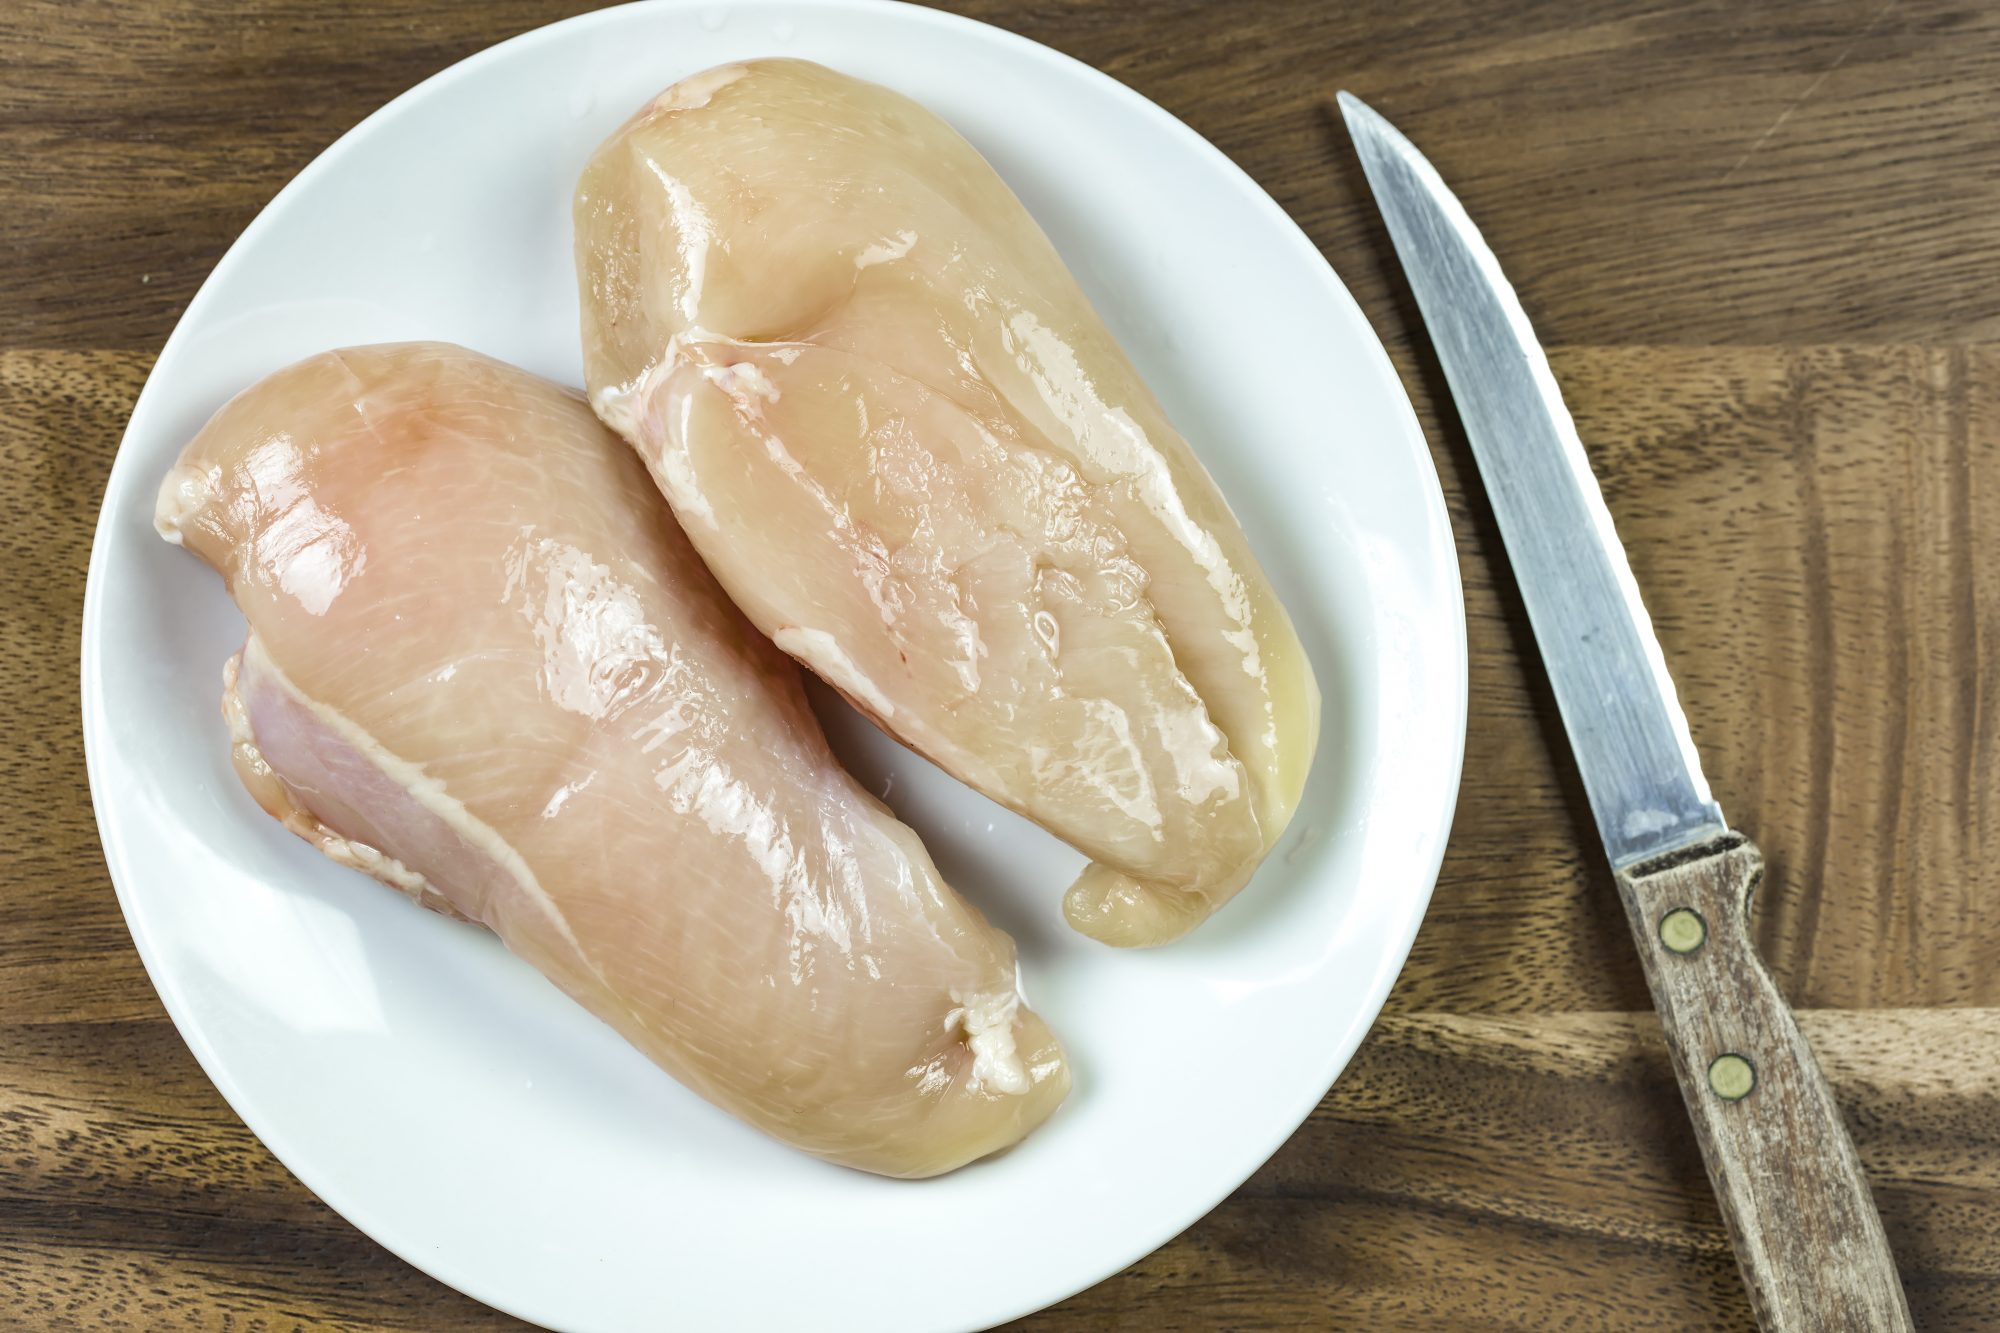 What Is That White Stuff in My Raw Chicken?